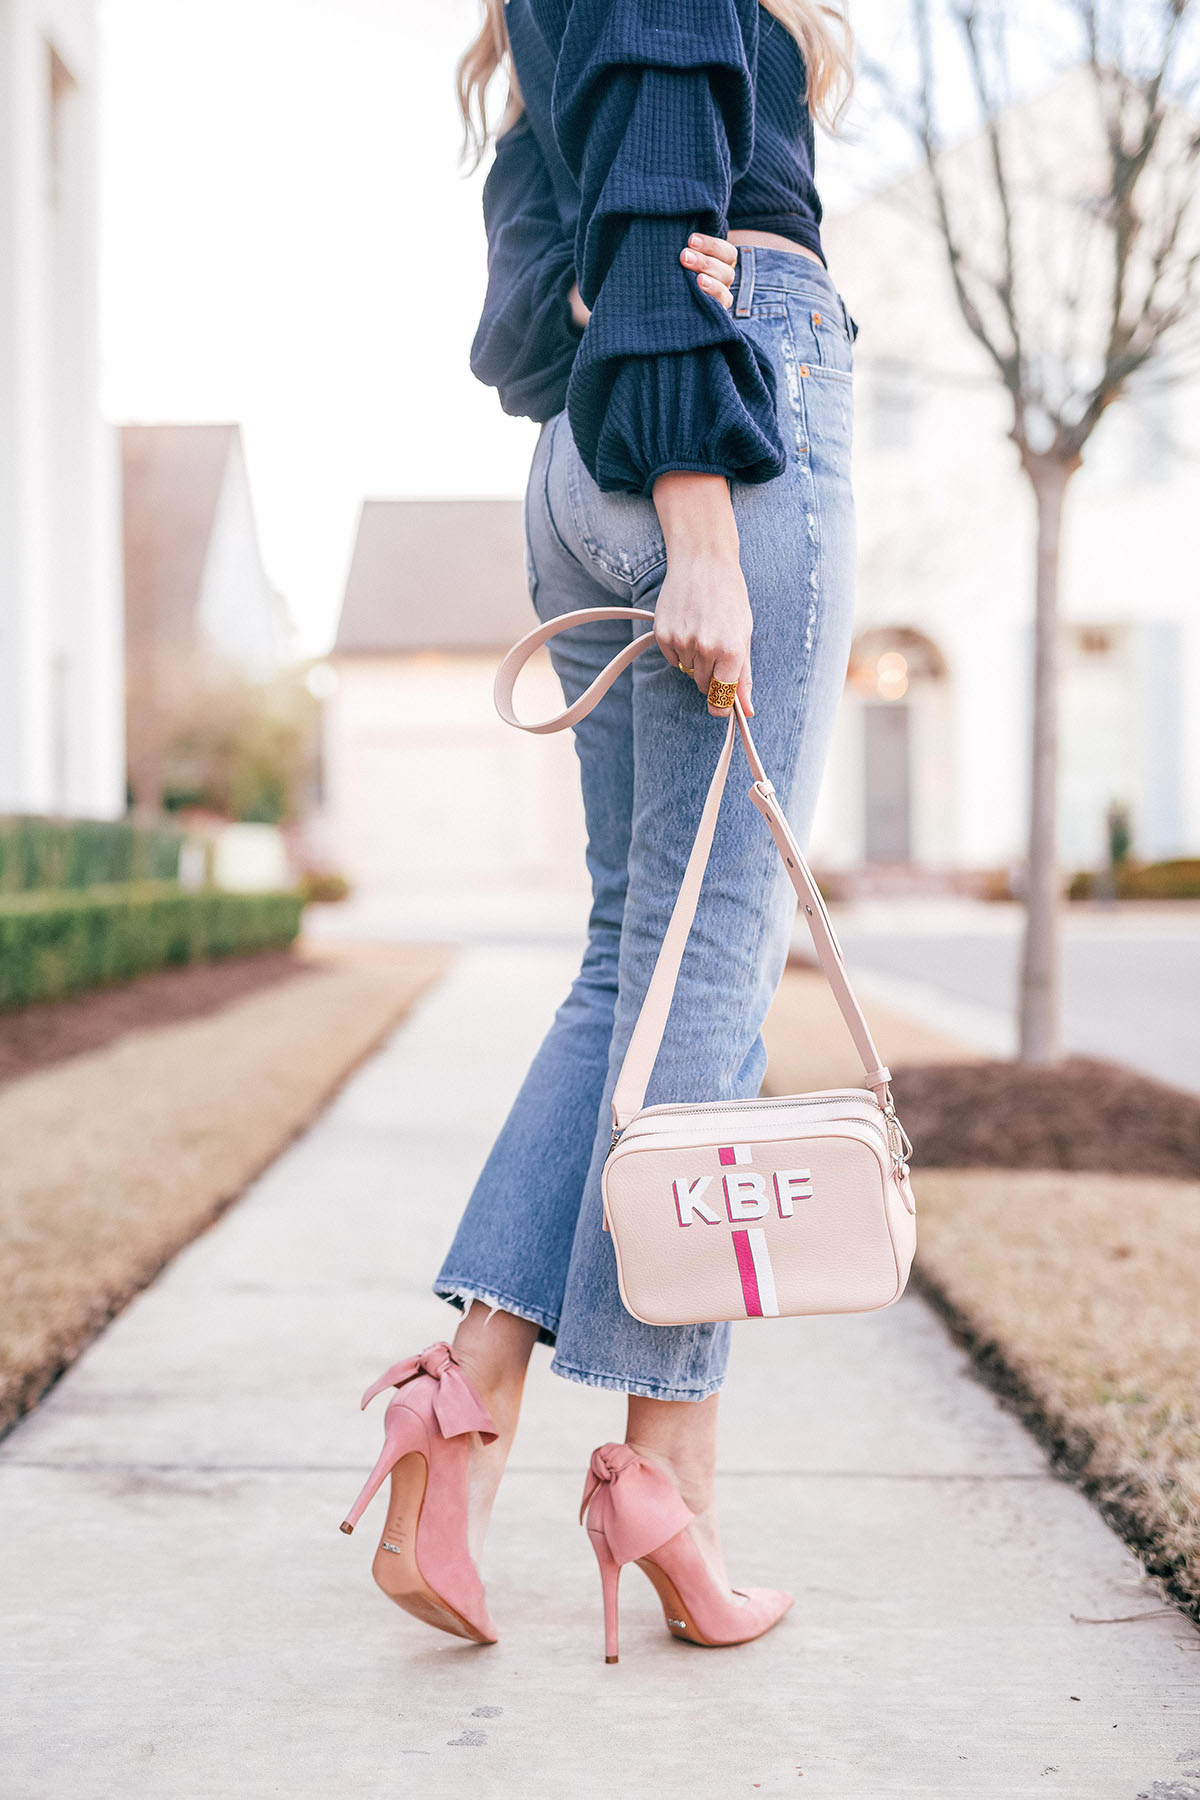 4 Tips On Delegating Tasks to Get Stuff Done + Cropped Denim For Spring | Handpainted Monogram Crossbody | Schutz Pink Bow Pumps